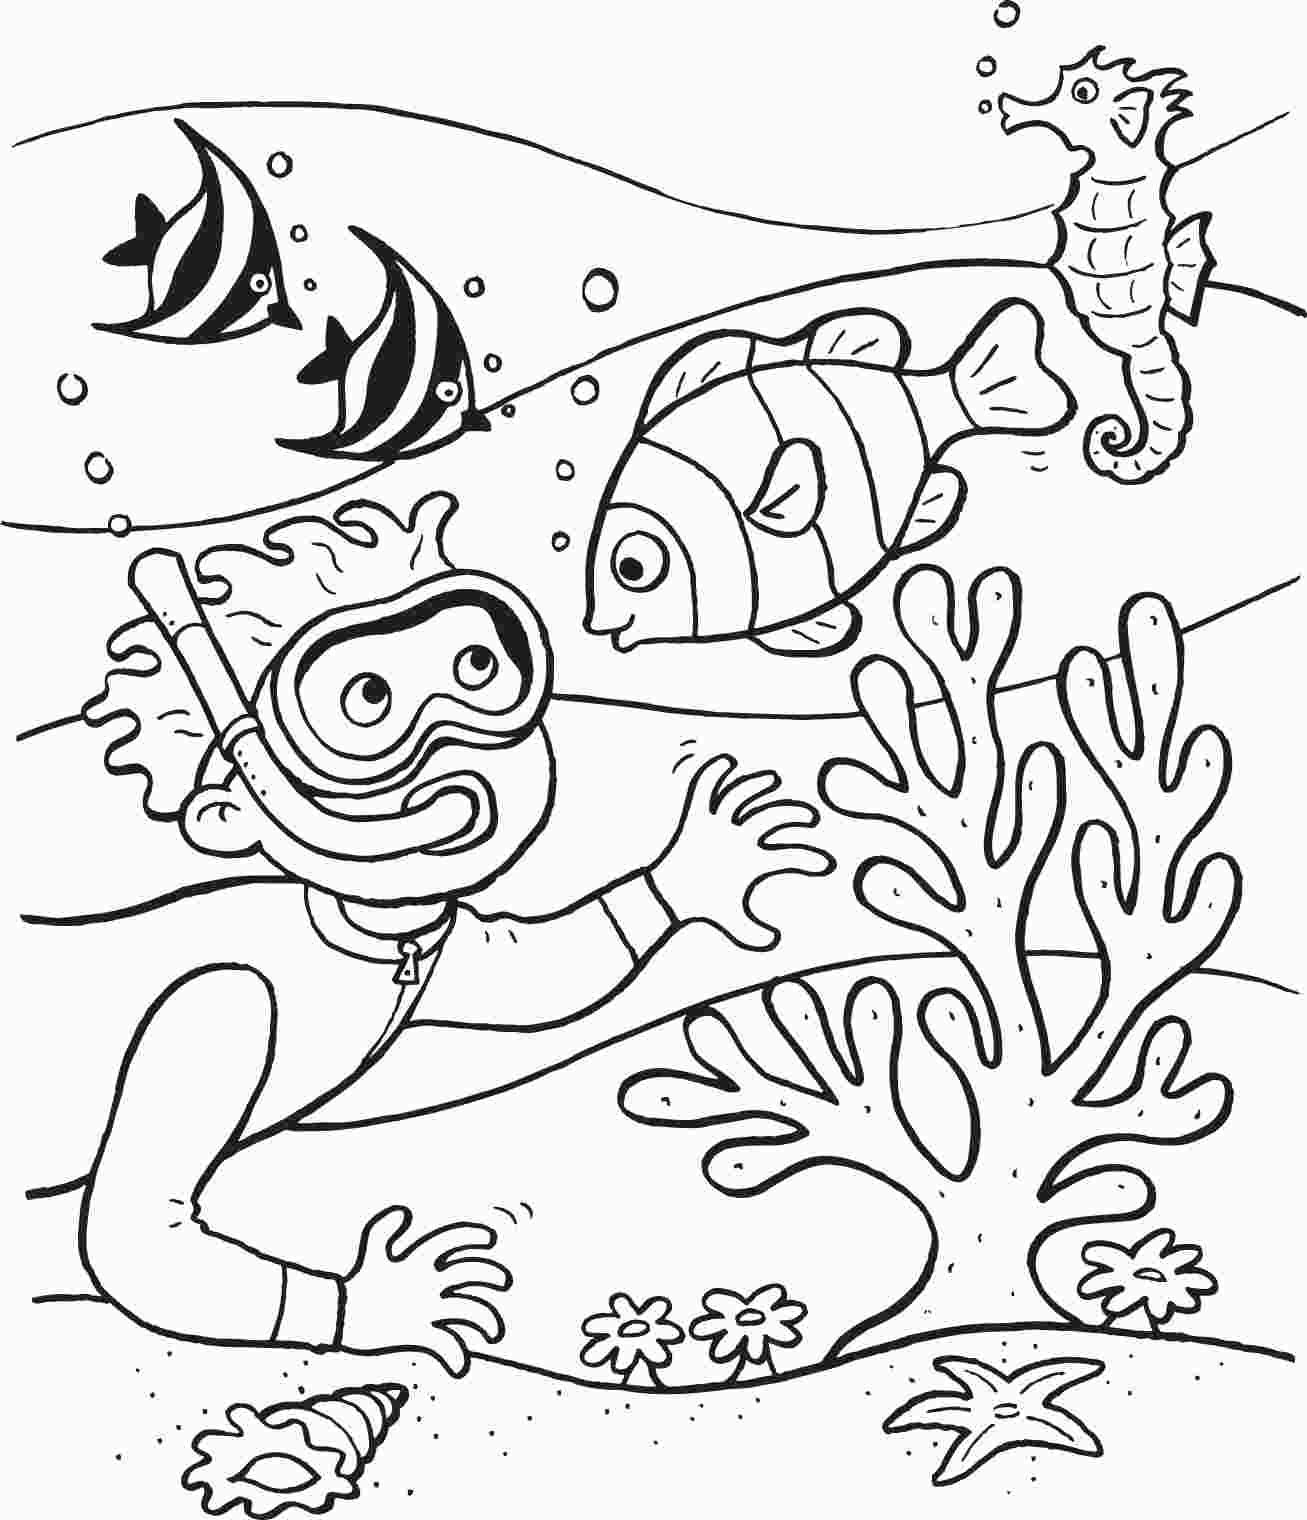 Underwater Coloring Sheets Fish Coloring Page Ocean Coloring Pages Beach Coloring Pages